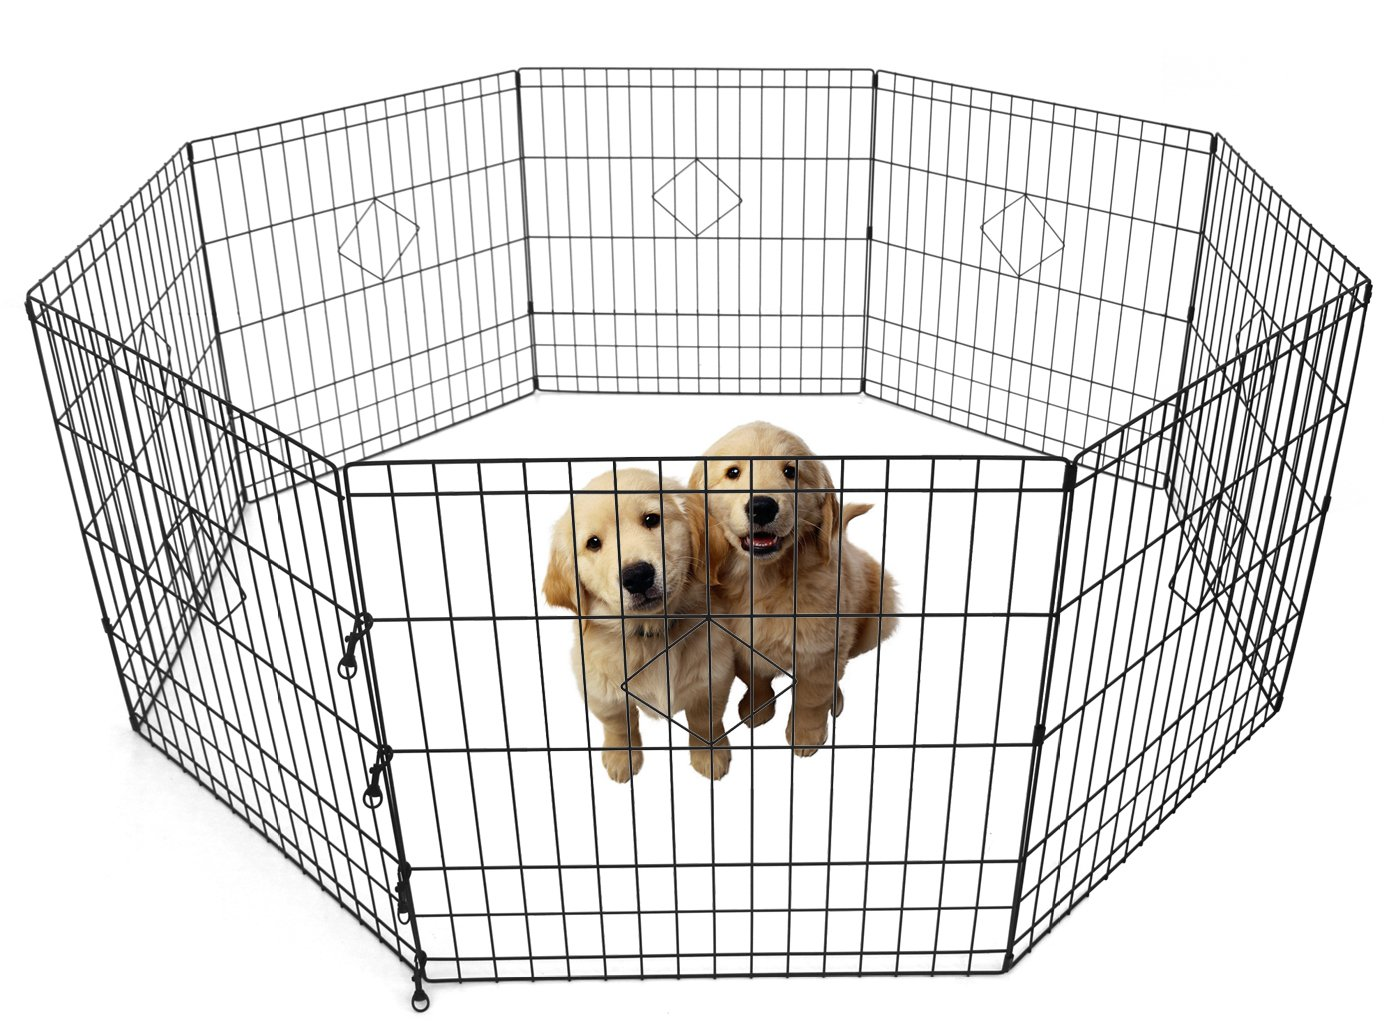 PAG Foldable Metal 8 Panels 25 in High Exercise Pet Fence Playpen for Dogs